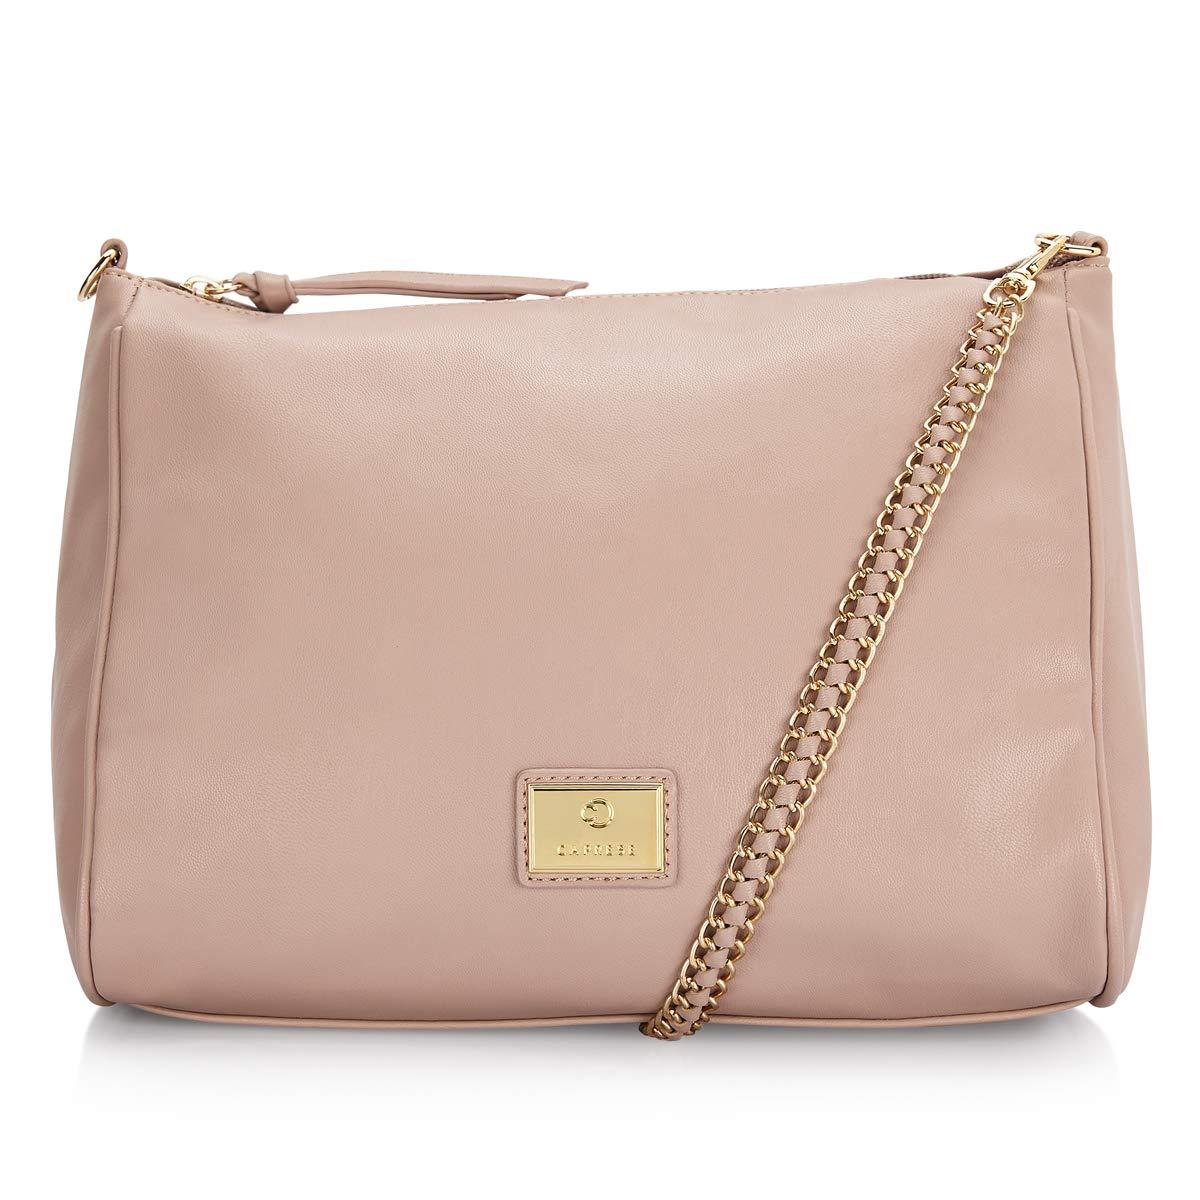 3a8b3e272 Buy Caprese Women Cross Body   Shoulder Bags at Best Prices Online ...